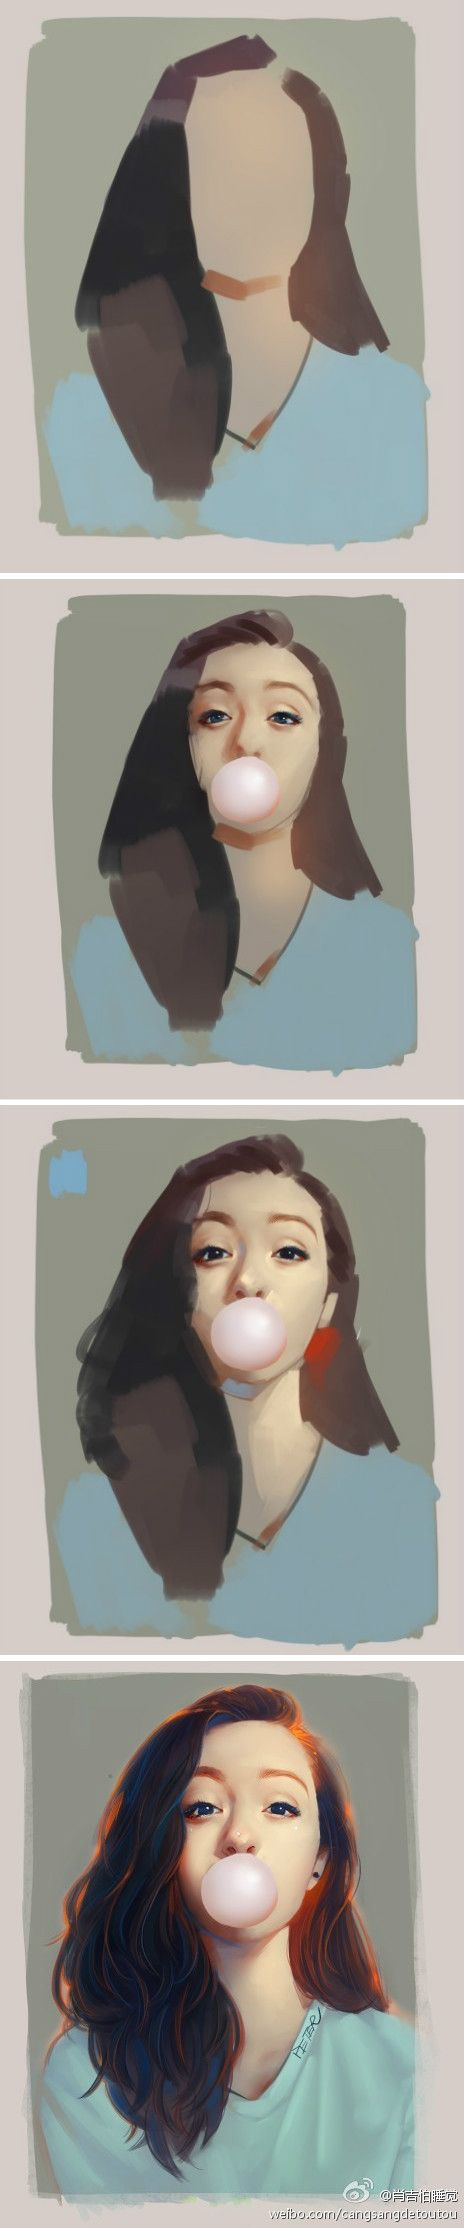 Step-by-step digital painting tutorial of an asian girl with bubble gum #digital #digitalpainting #tutorial